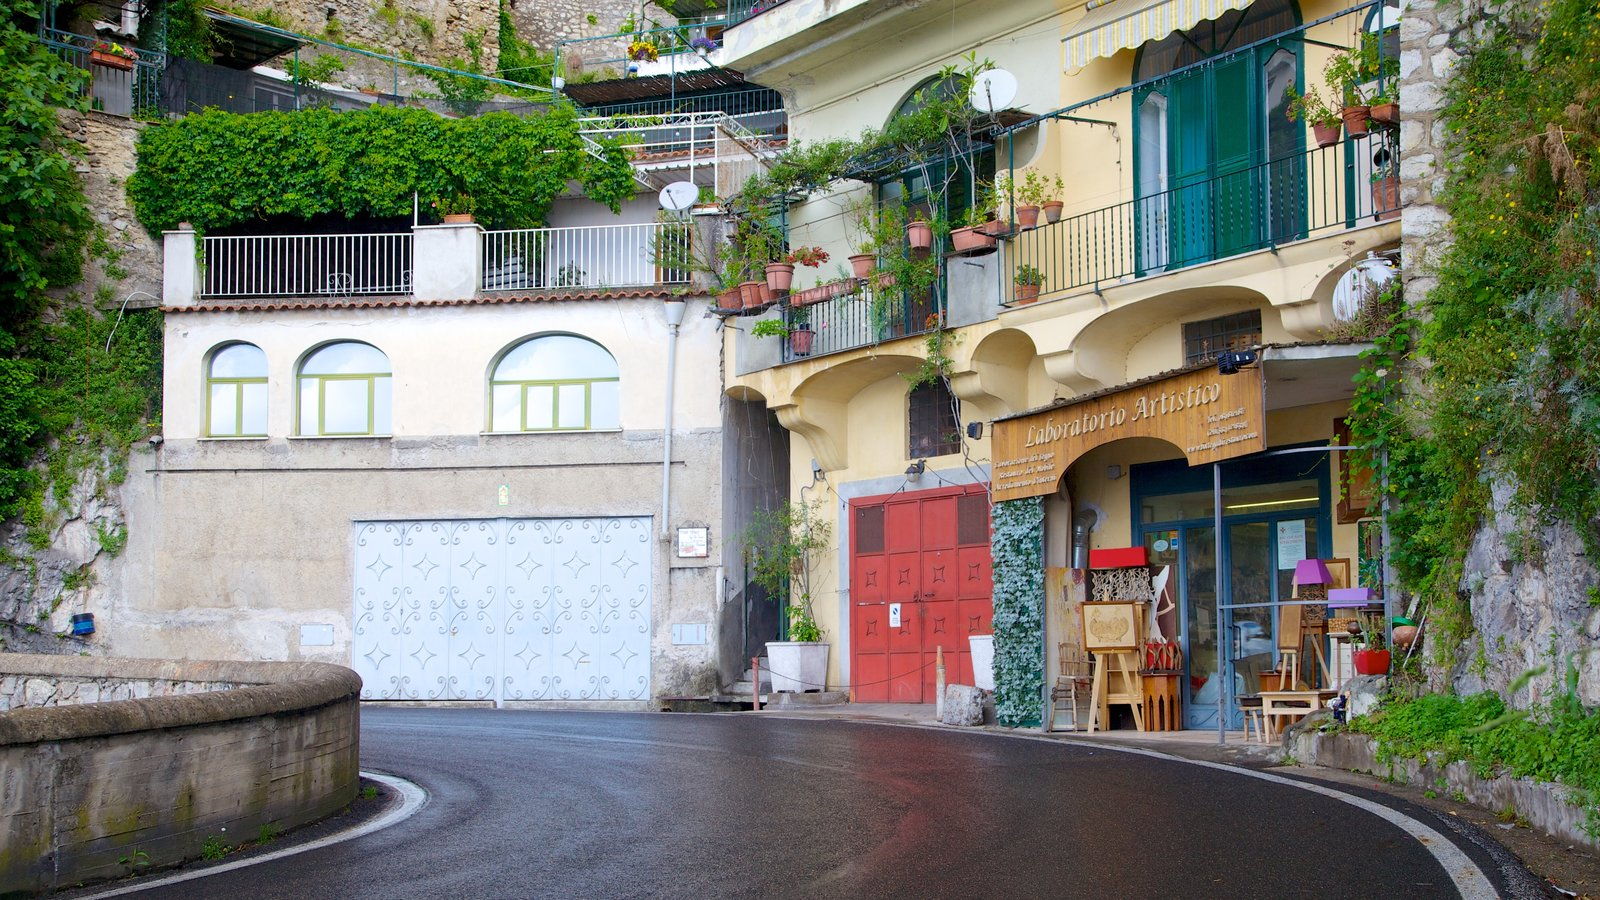 Positano showing street scenes and a house